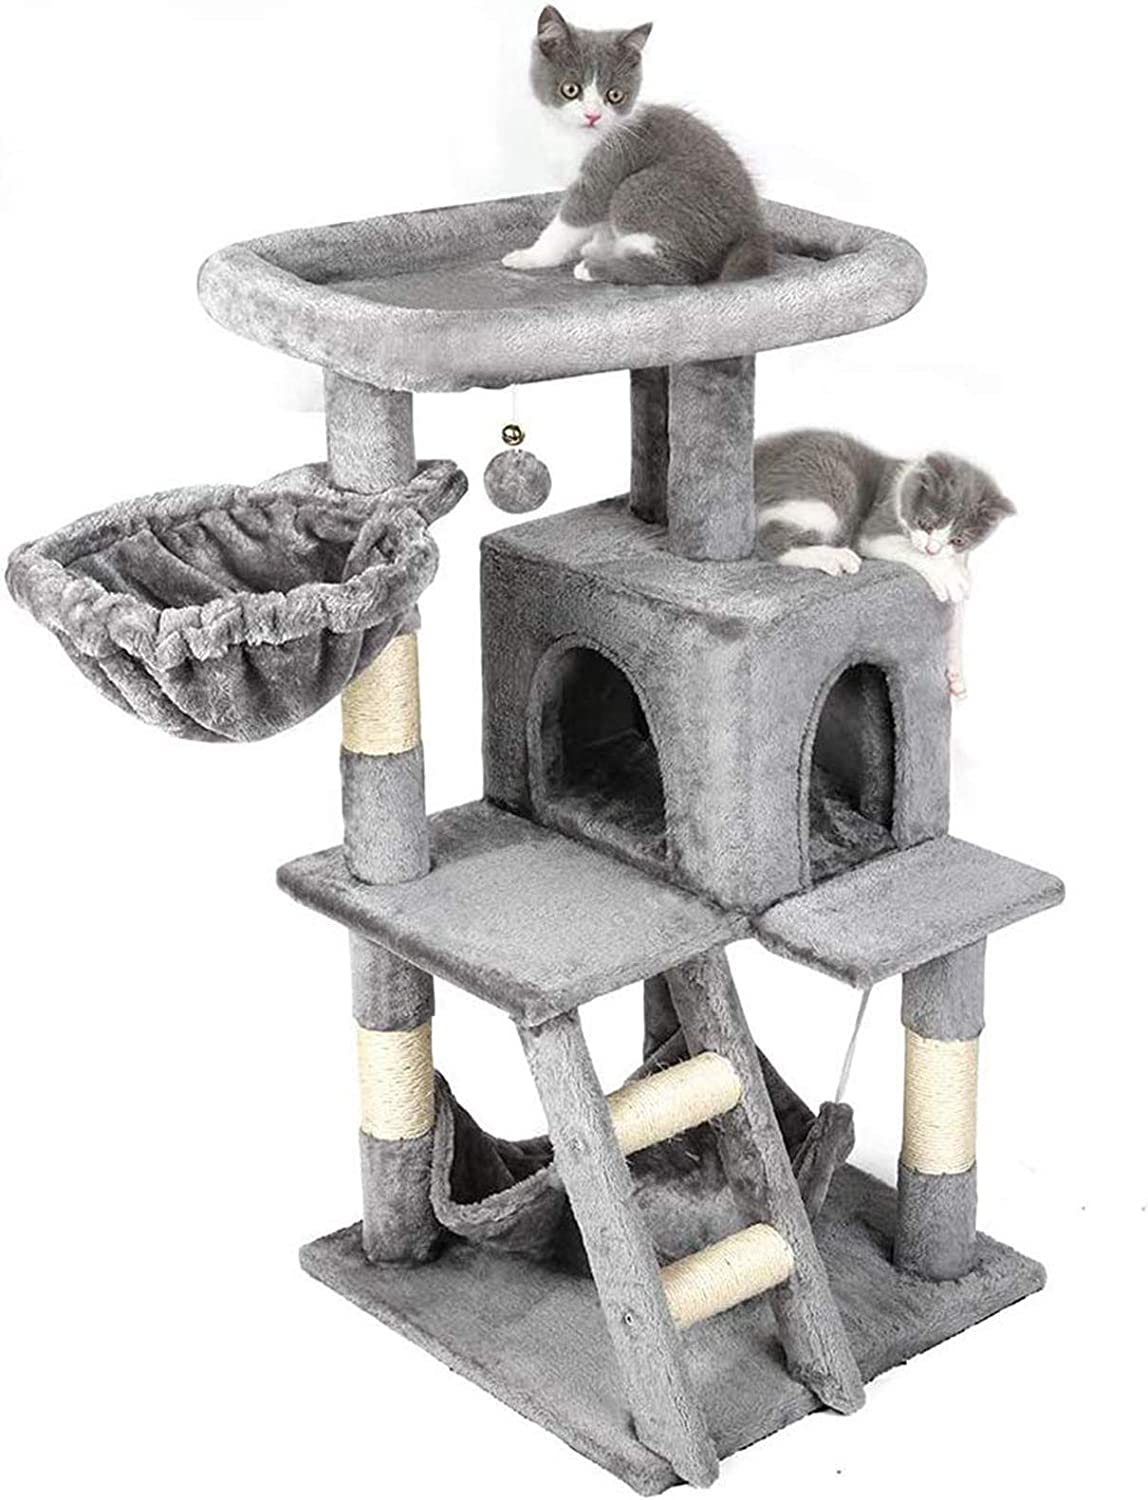 rabbitgoo Cat Tree Cat Tower 39-inch, Multi-Level Kitten Stand House Condo with Scratching Posts, Hammock & Large Plush Perch, Tall Indoor Kitty Climbing House Furniture Play Center for Large Cats